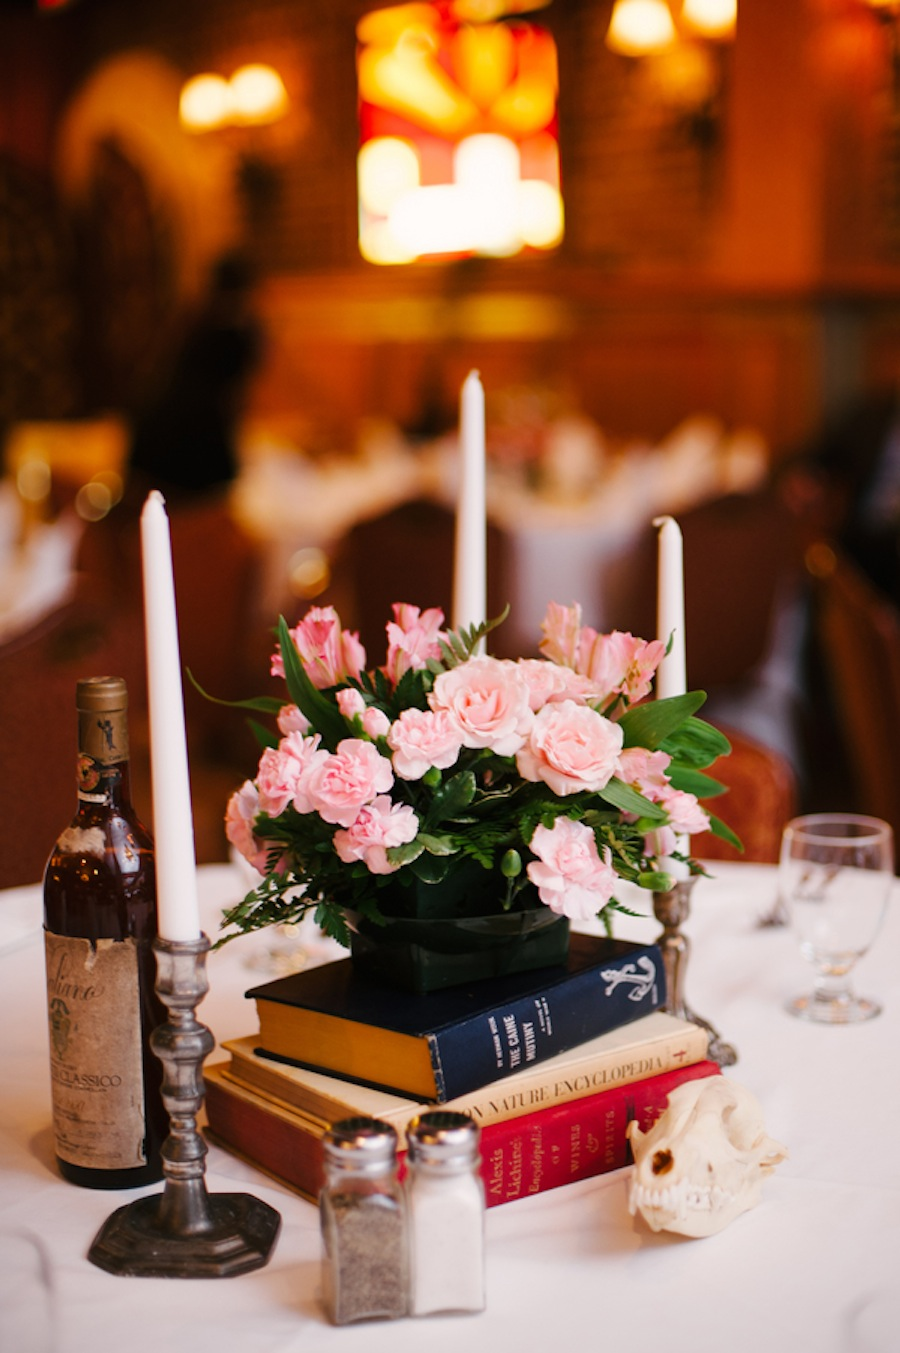 Candle Candelabra Wedding Centerpieces with Vintage Books and Pink Flowers